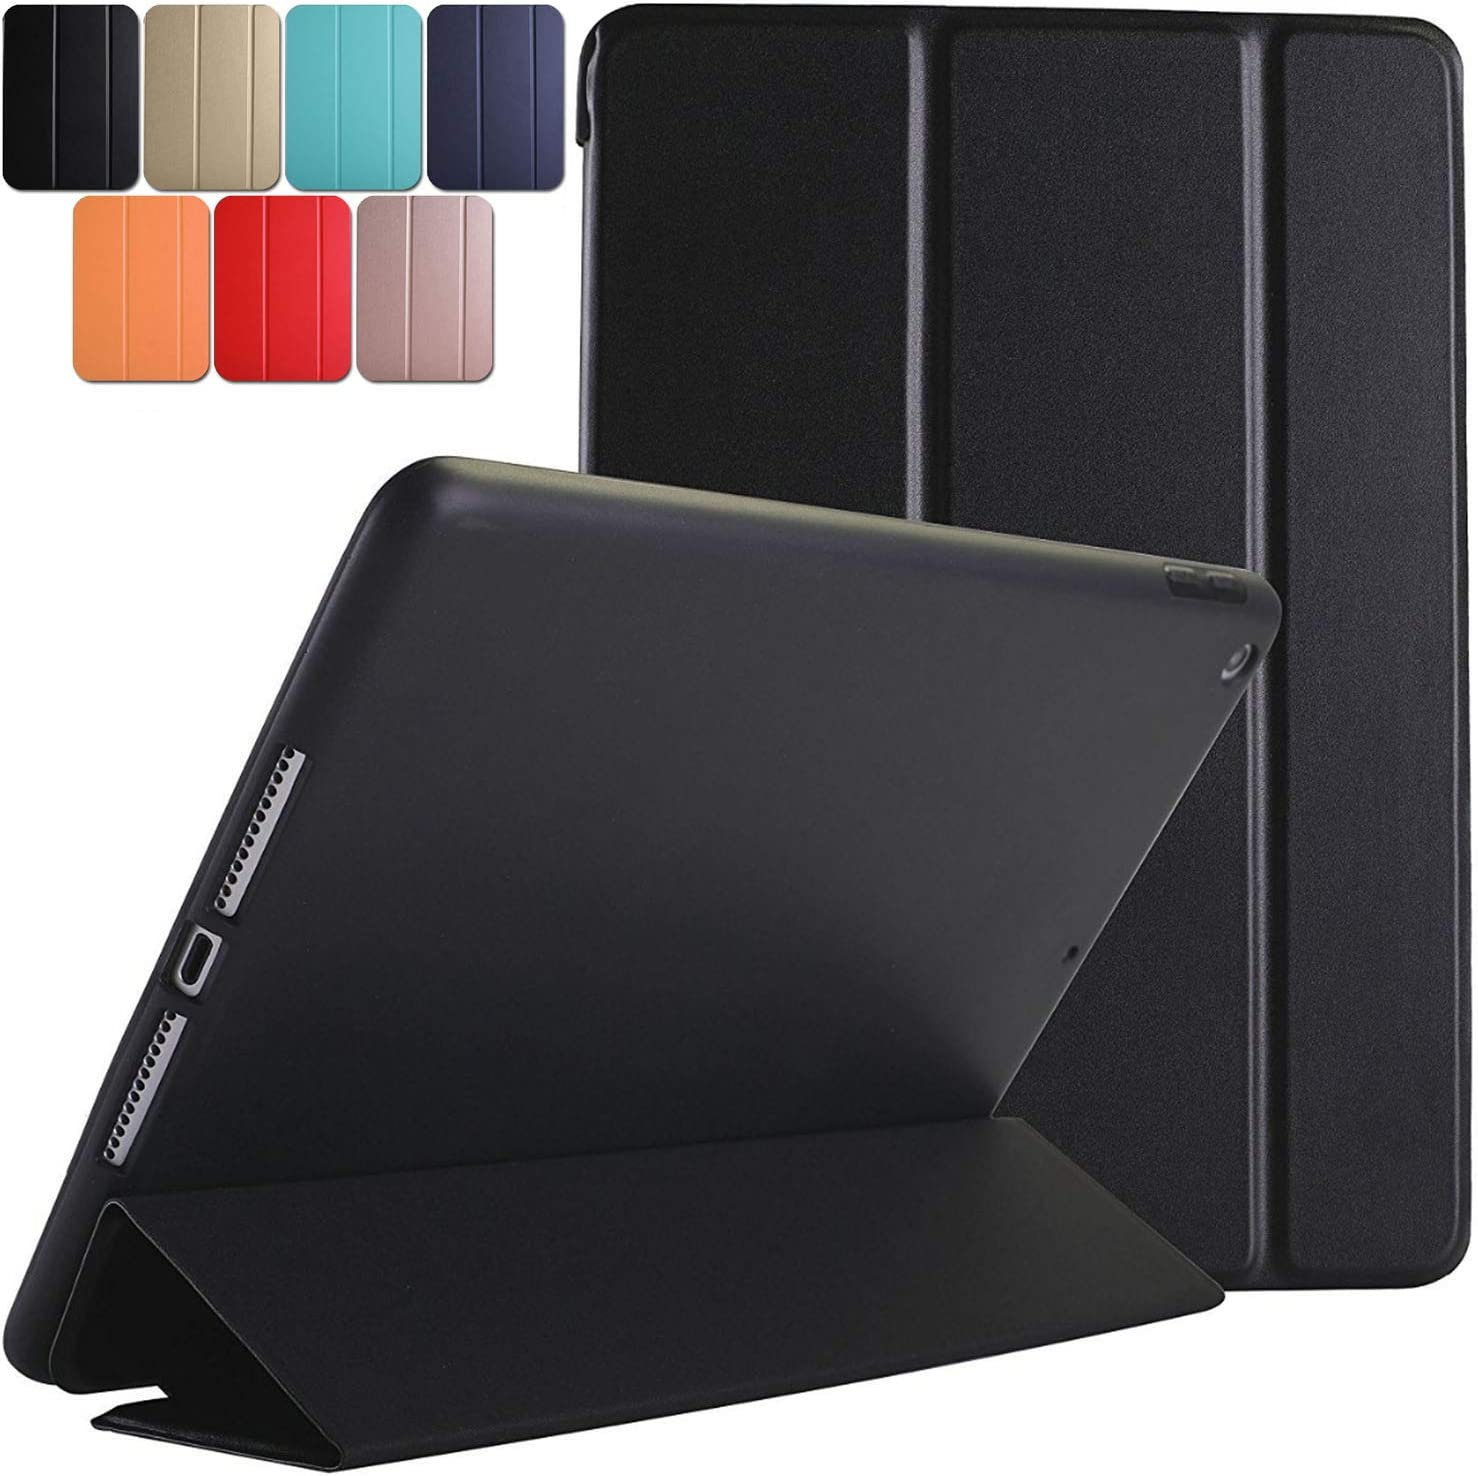 DuraSafe Cases for iPad PRO 11 2020 MY232LL/A MXDC2LL/A MXDE2LL/A MXDG2LL/A MY252LL/A MXDD2LL/A MXDF2LL/A MXDH2LL/A MY332LL/A Ultra Slim Case with Auto Sleep/Wake Function & Classic TPU Back - Black